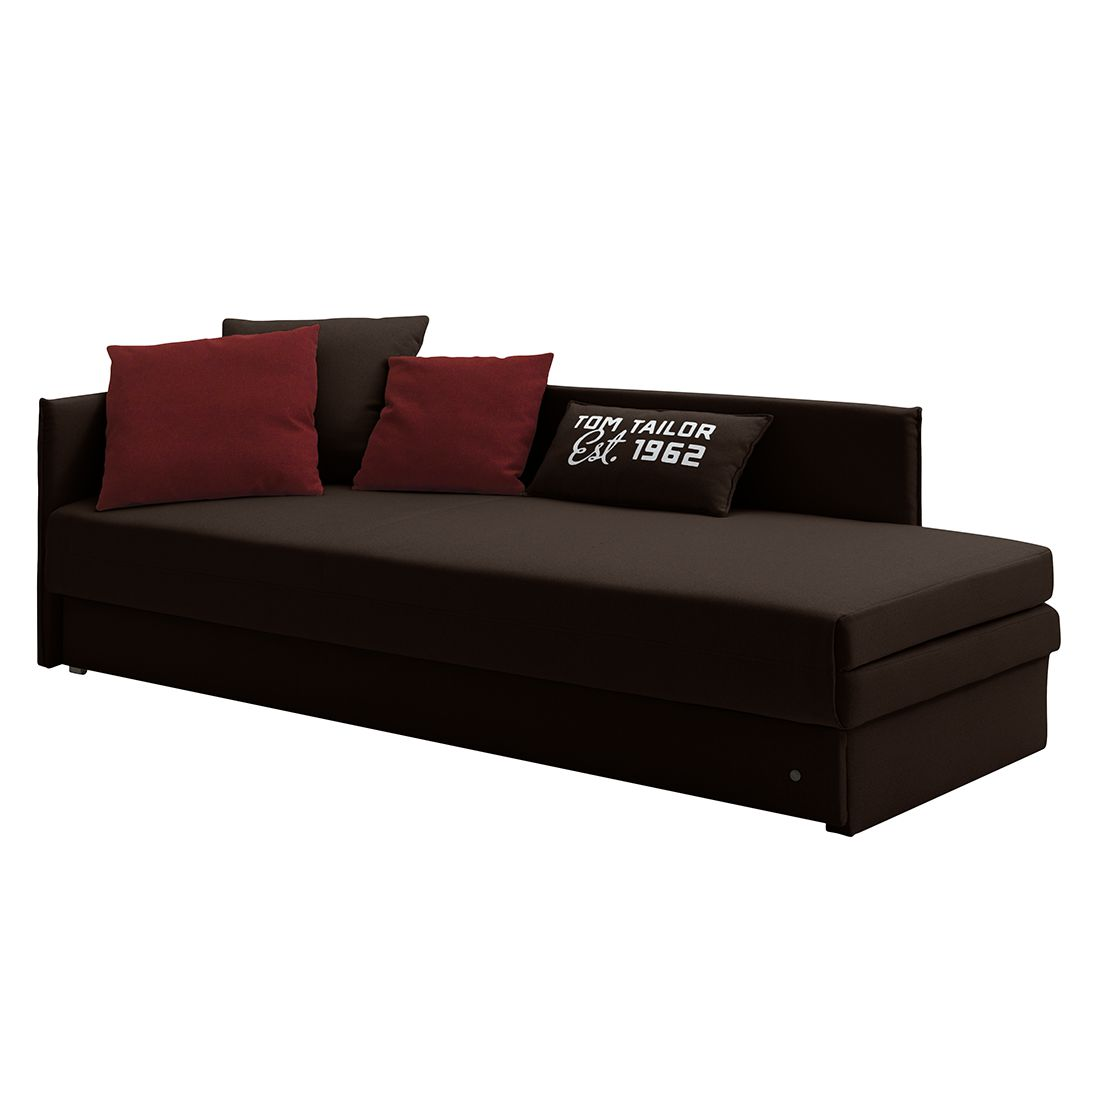 canap convertible guest tissu structur accoudoir mont gauche vu. Black Bedroom Furniture Sets. Home Design Ideas